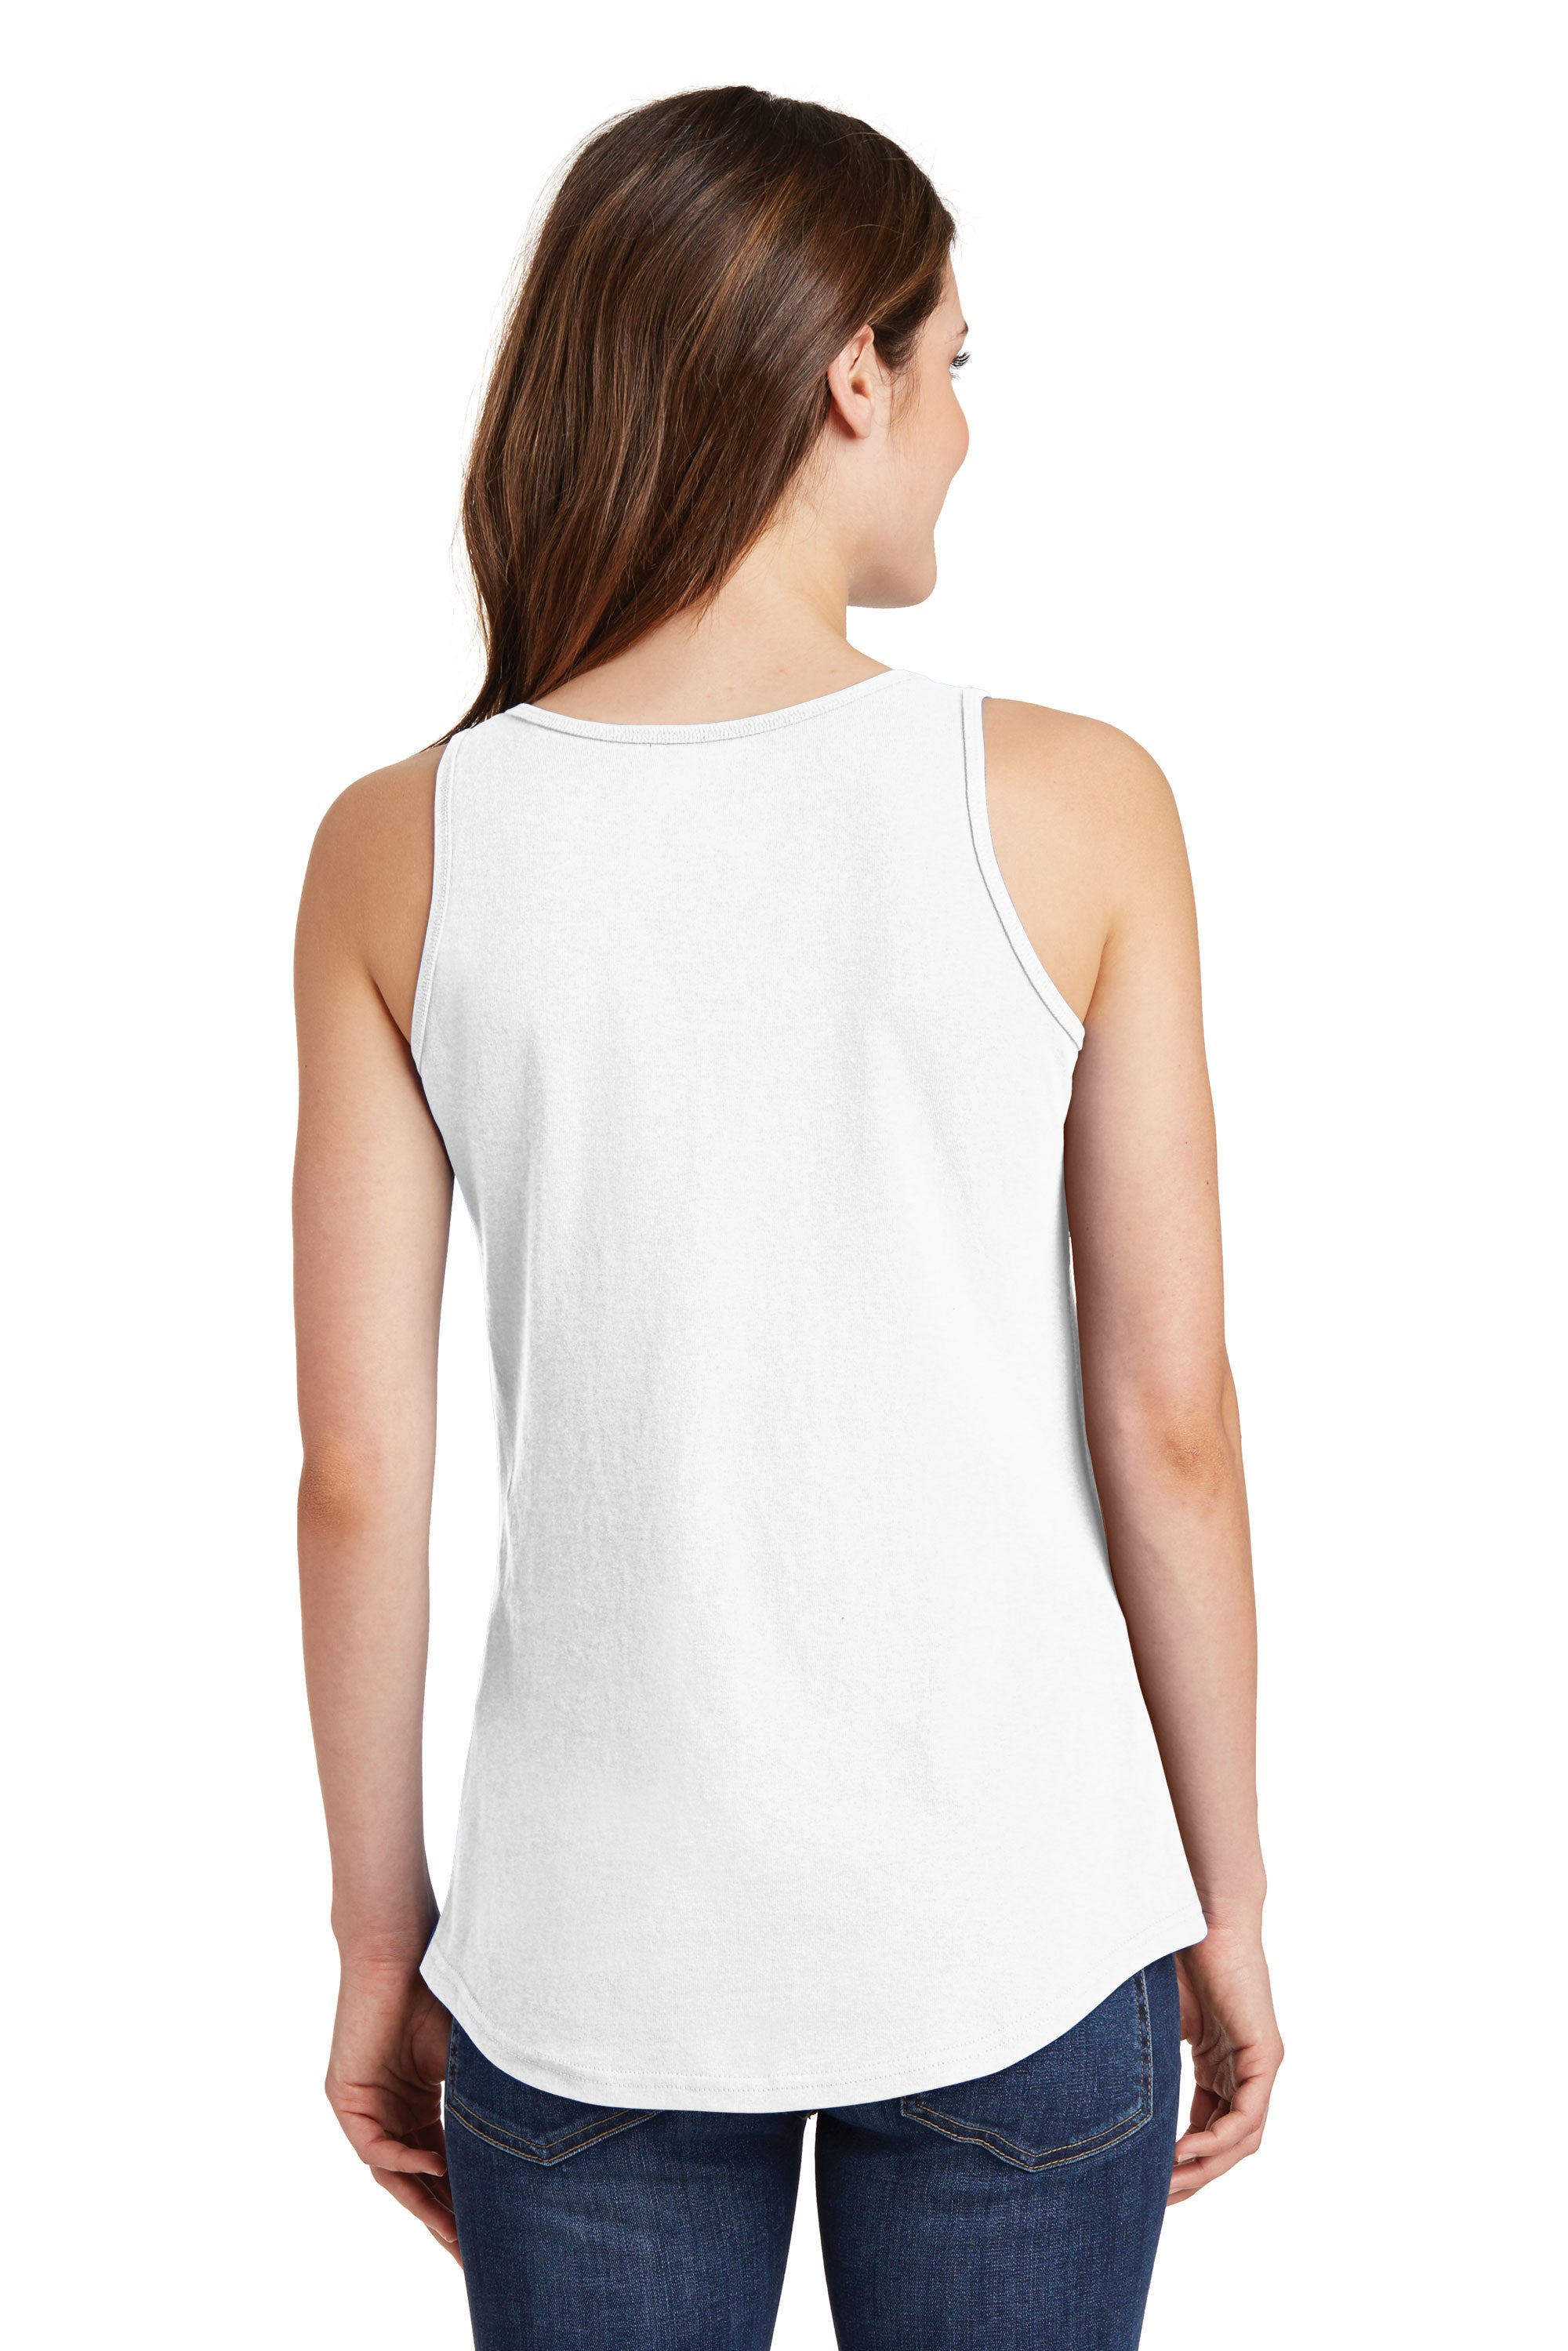 IN THE ZONE - TEEN GIRL TANK